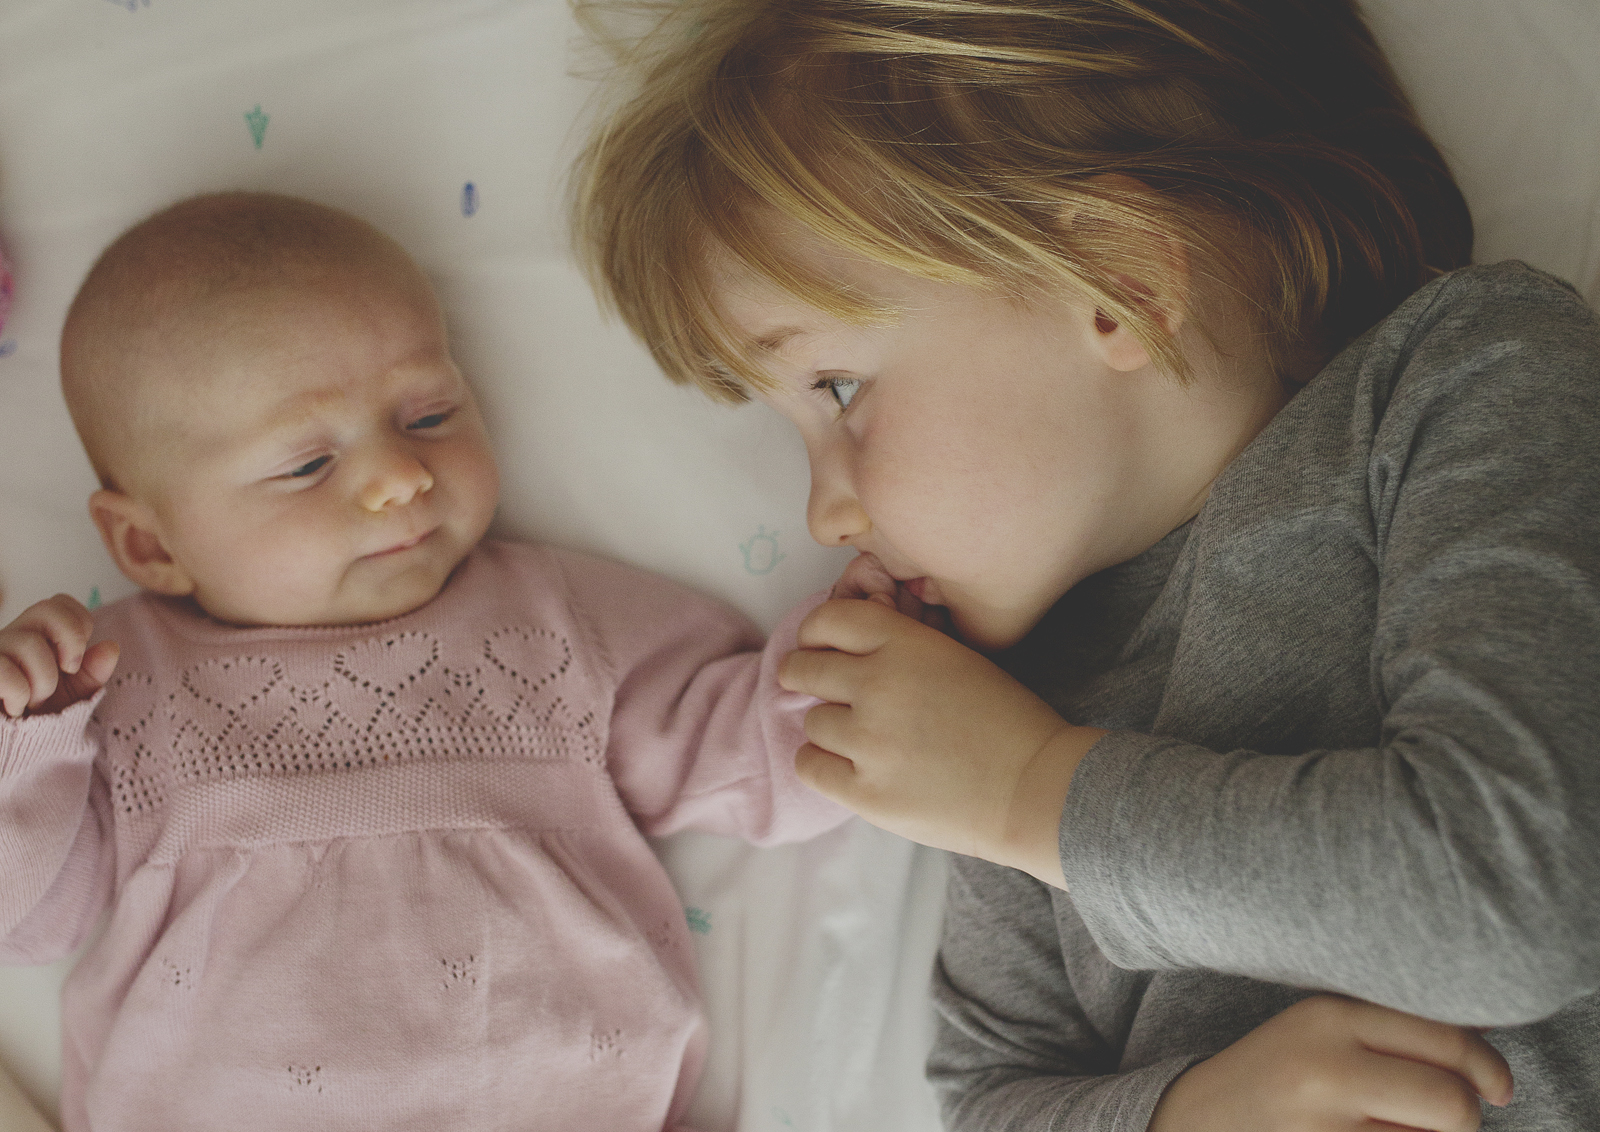 Big brother loves his little newborn baby sister